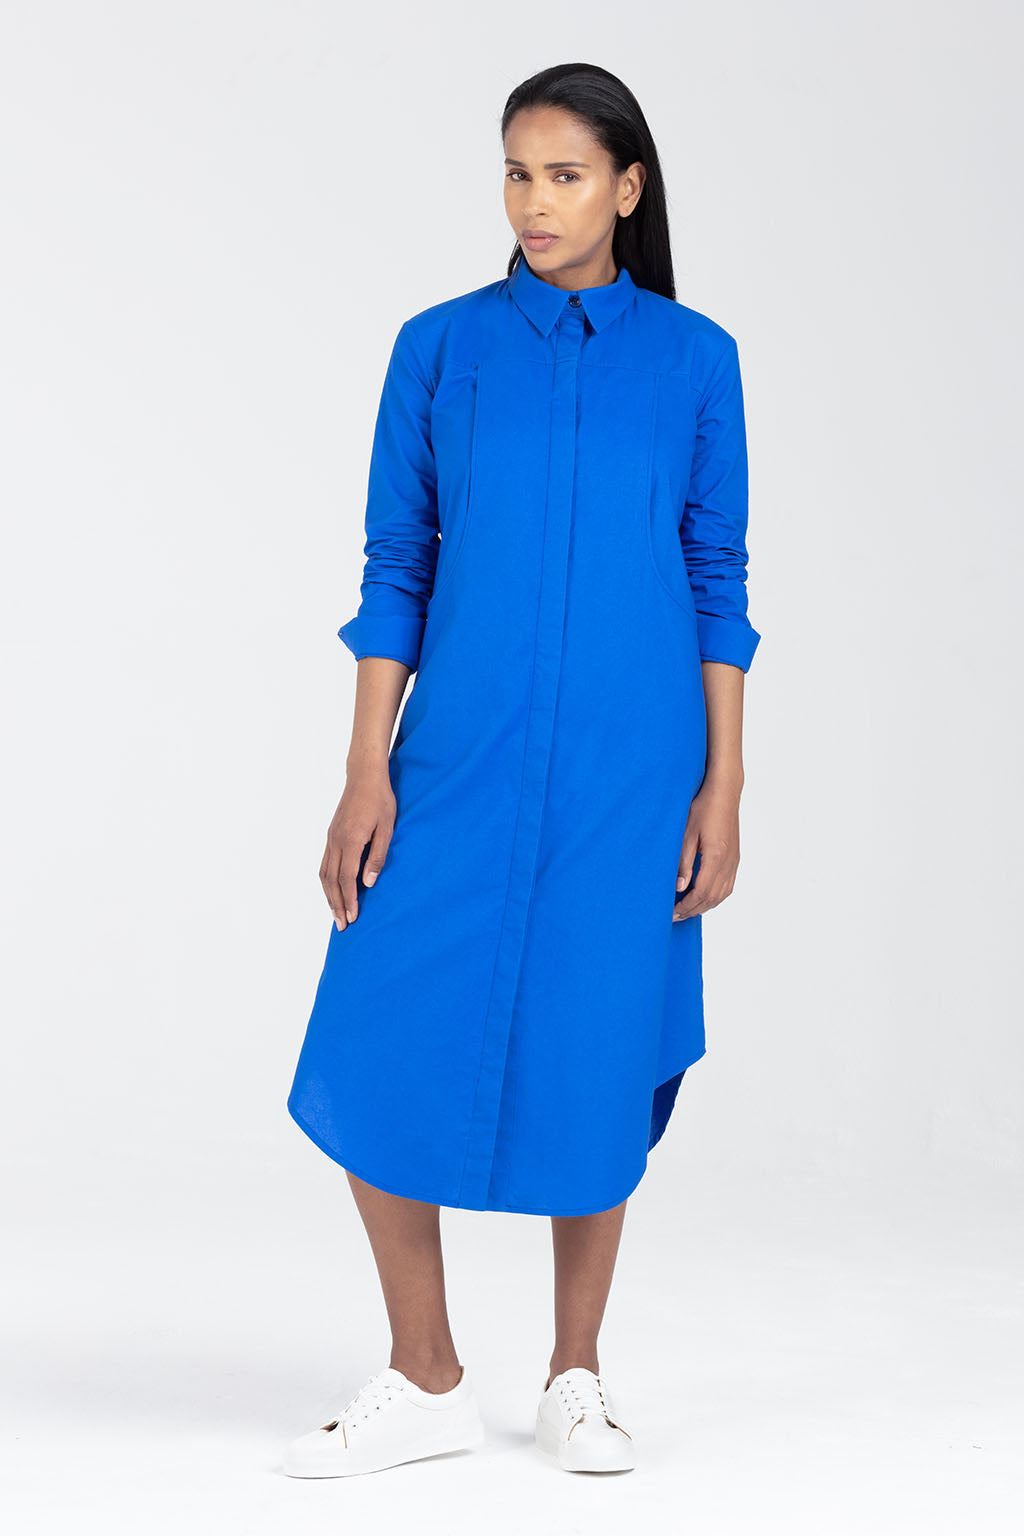 Sarka London - Emmeline Shirt Dress